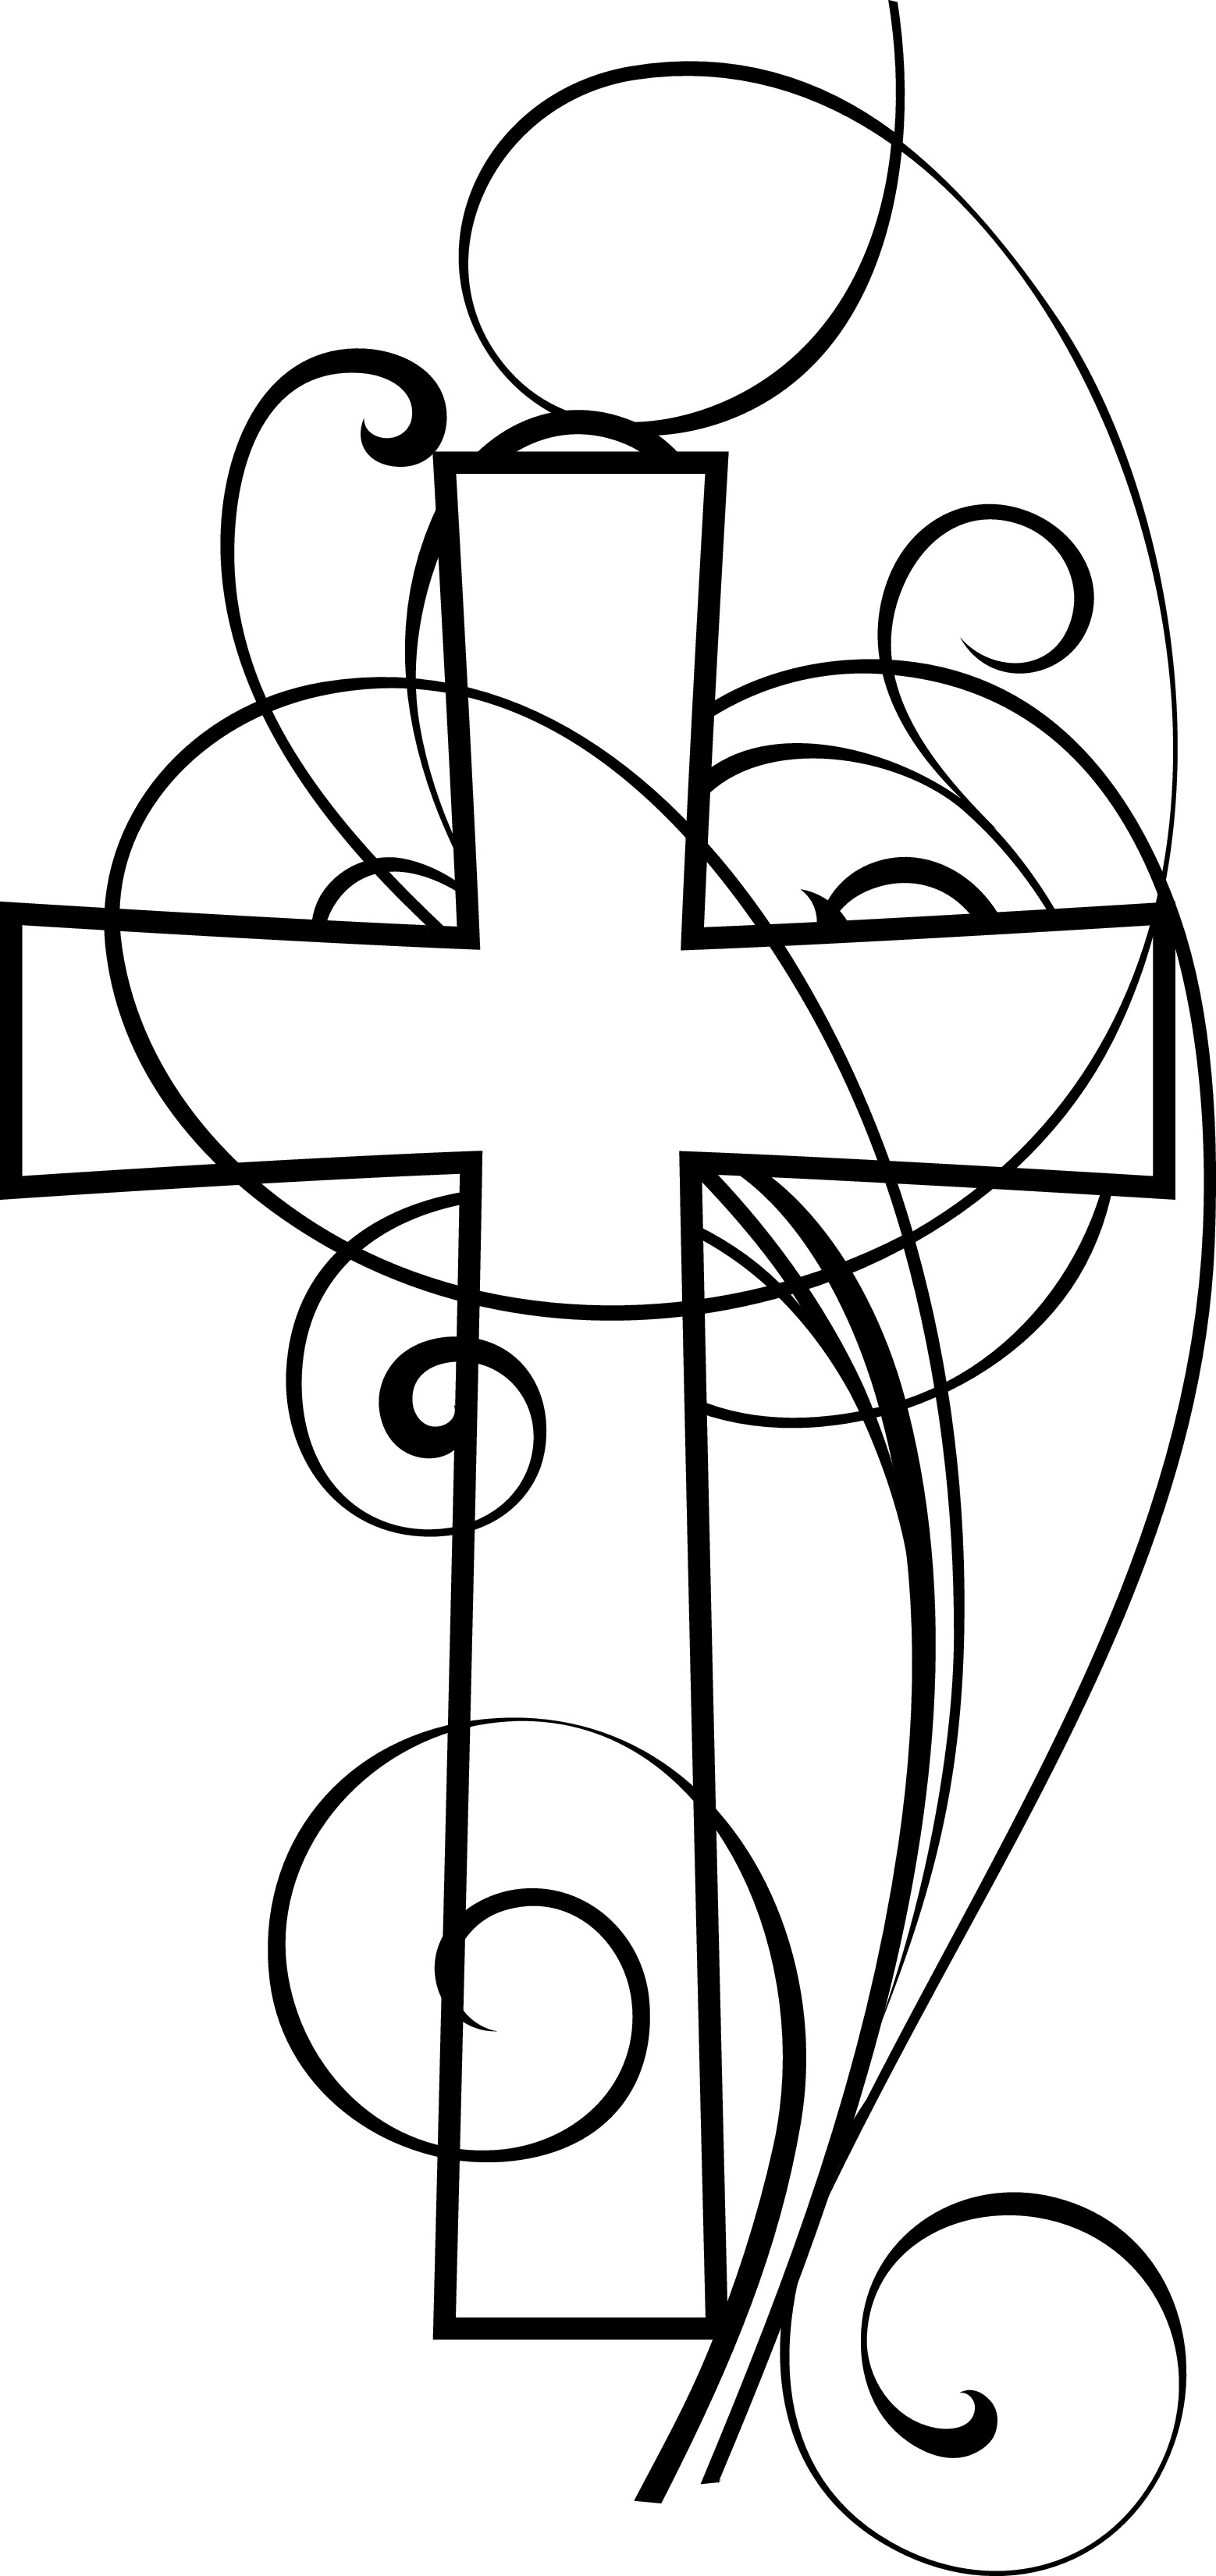 Christian Cliparts U0026middot; Clipart -christian cliparts u0026middot; clipart jesus-2